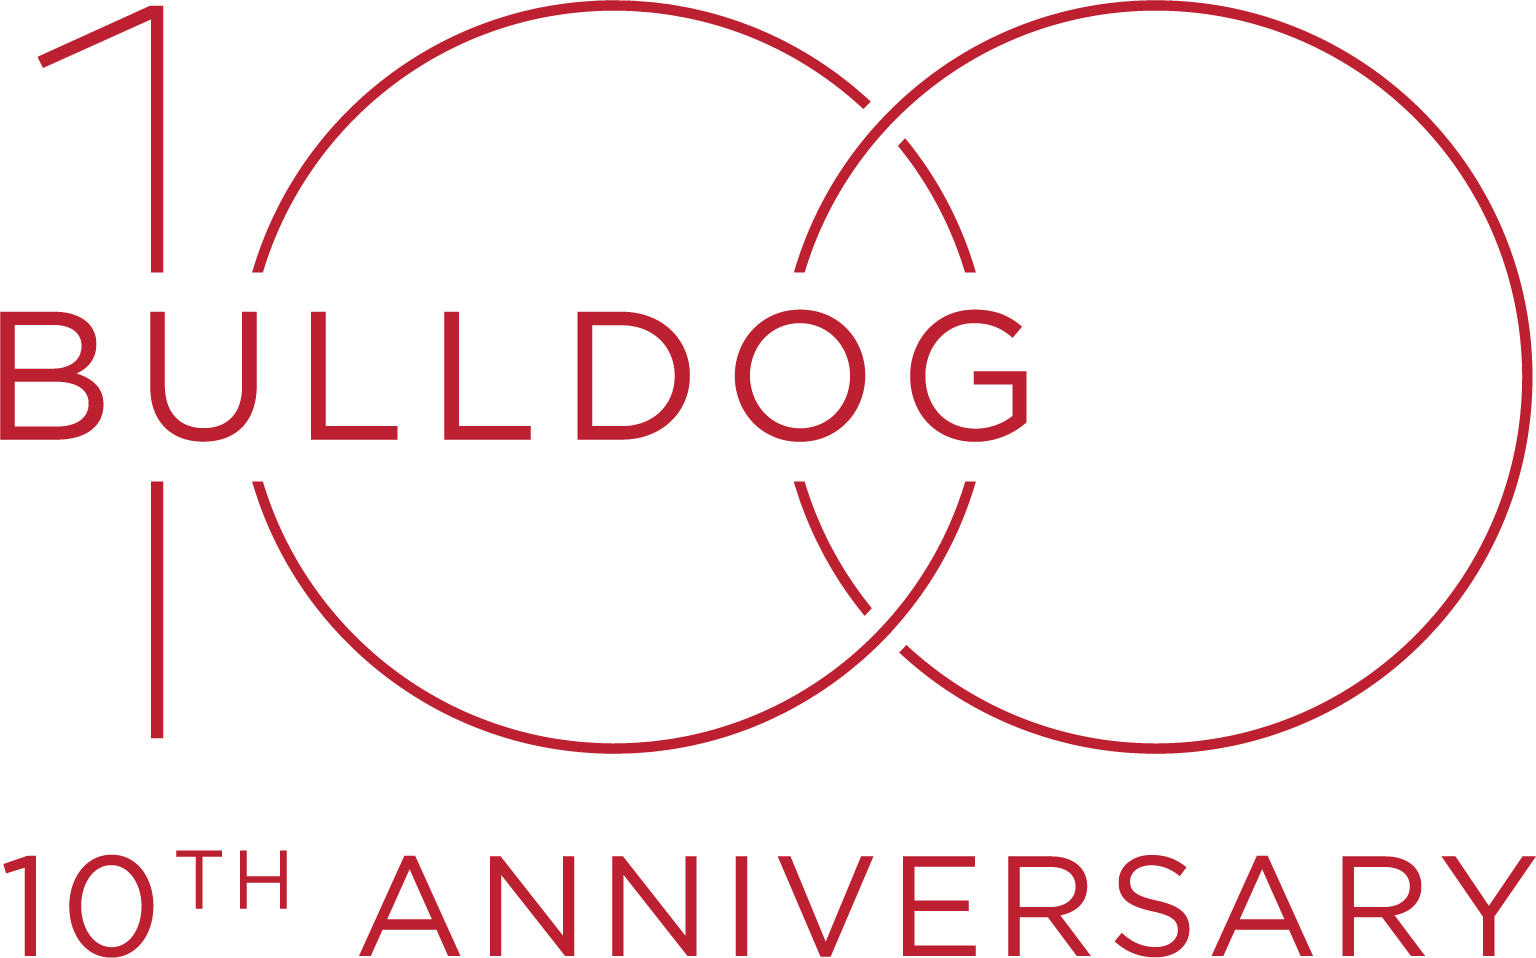 Bulldog 100 10th Anniversary logo